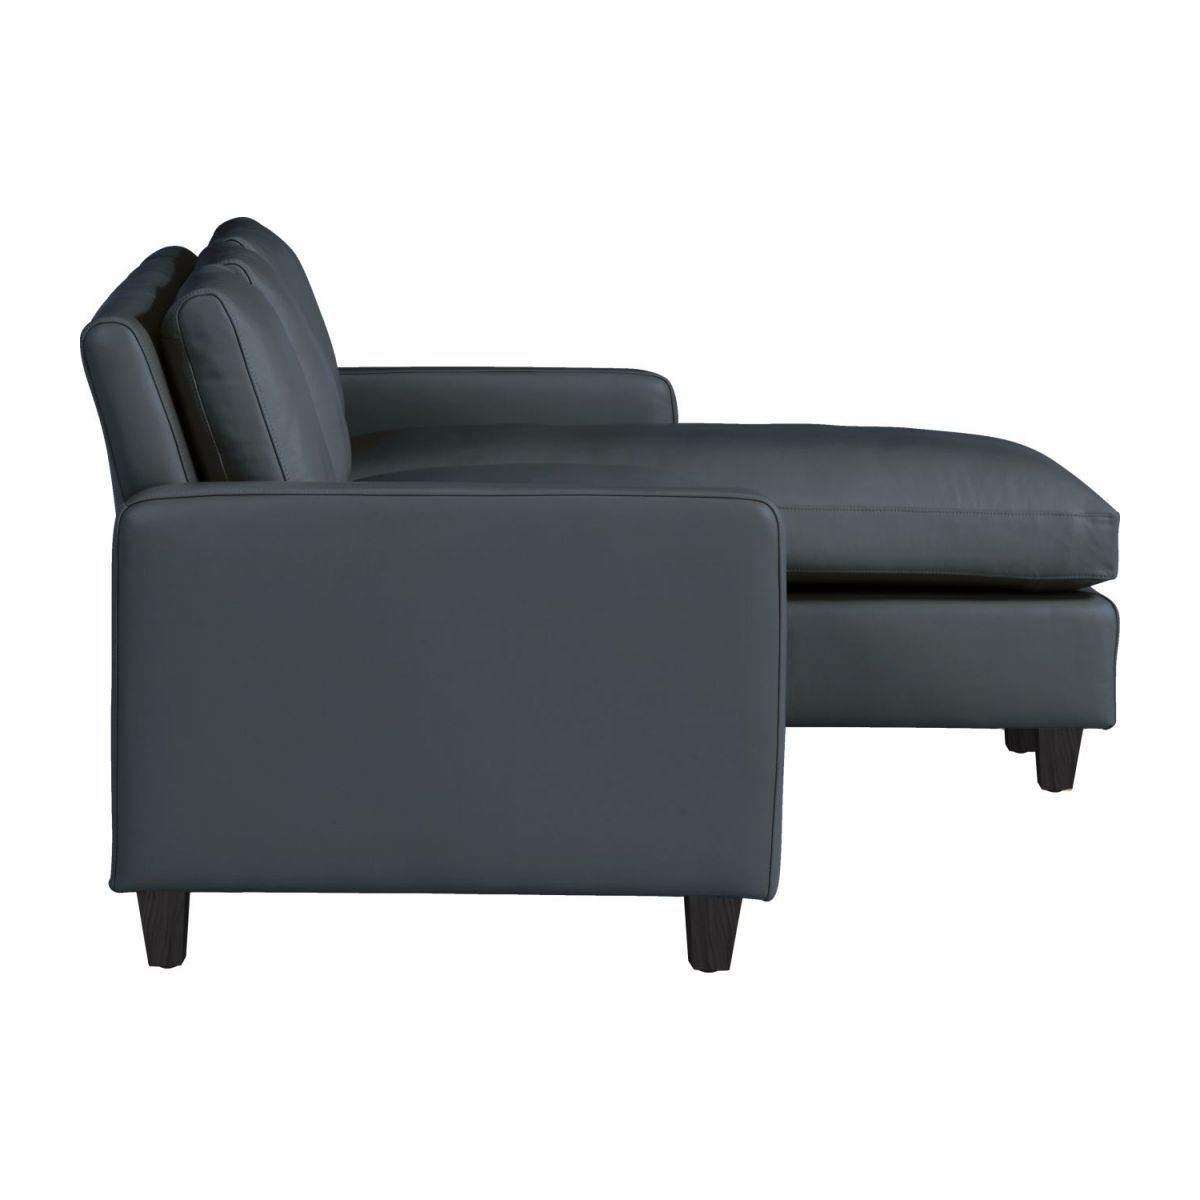 Leather corner sofa n°3